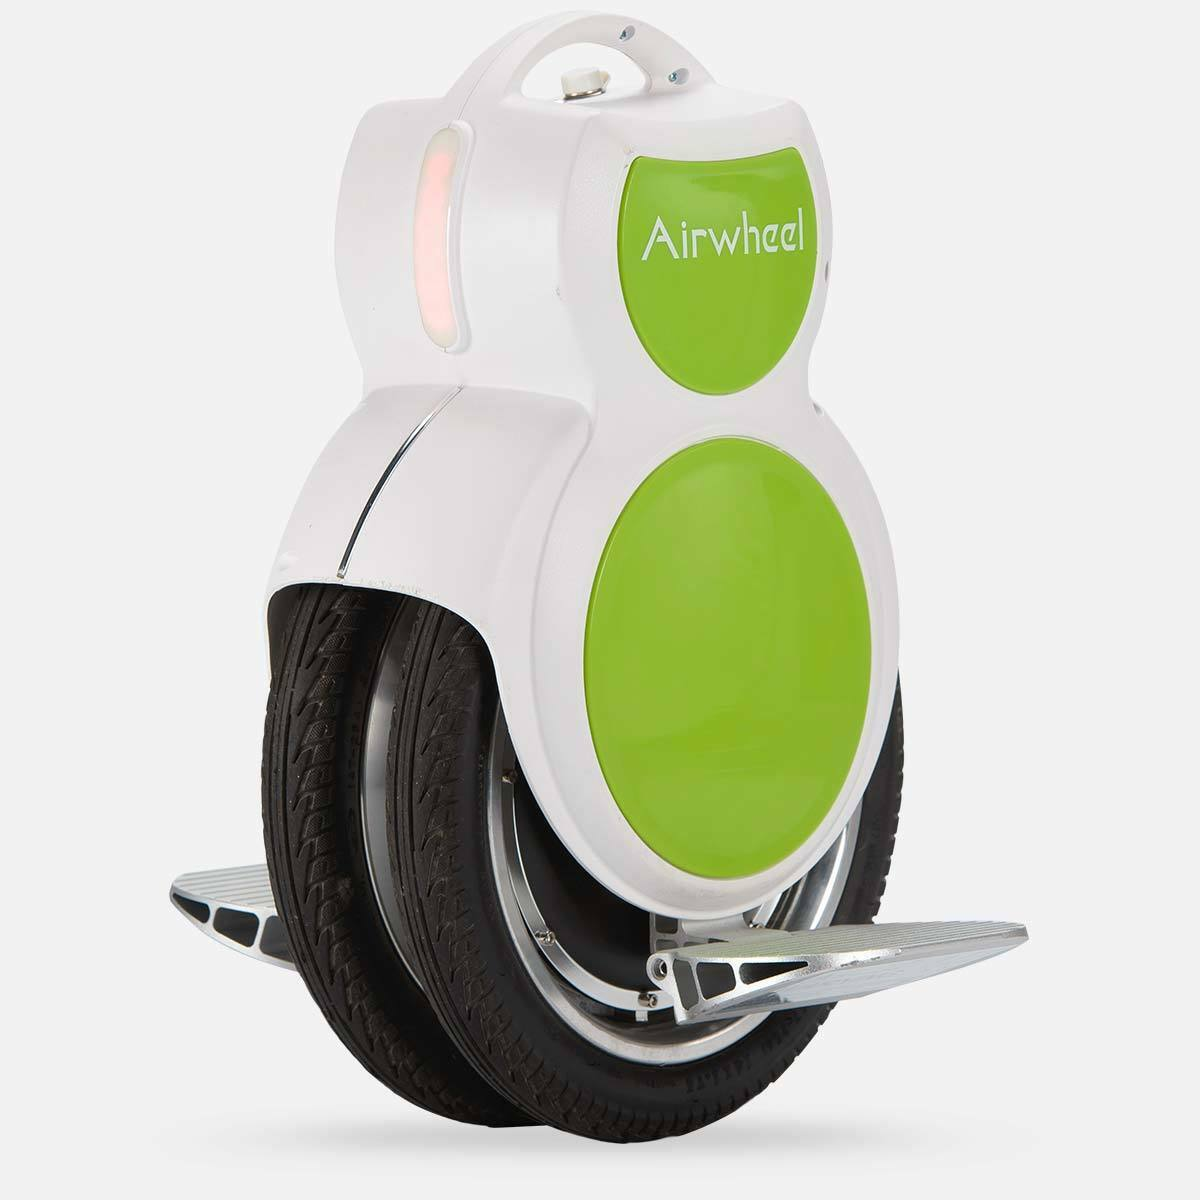 Airwheel Q6 Electric Self Balancing Scooter Unicycle Solowheel Dual Wheel Green